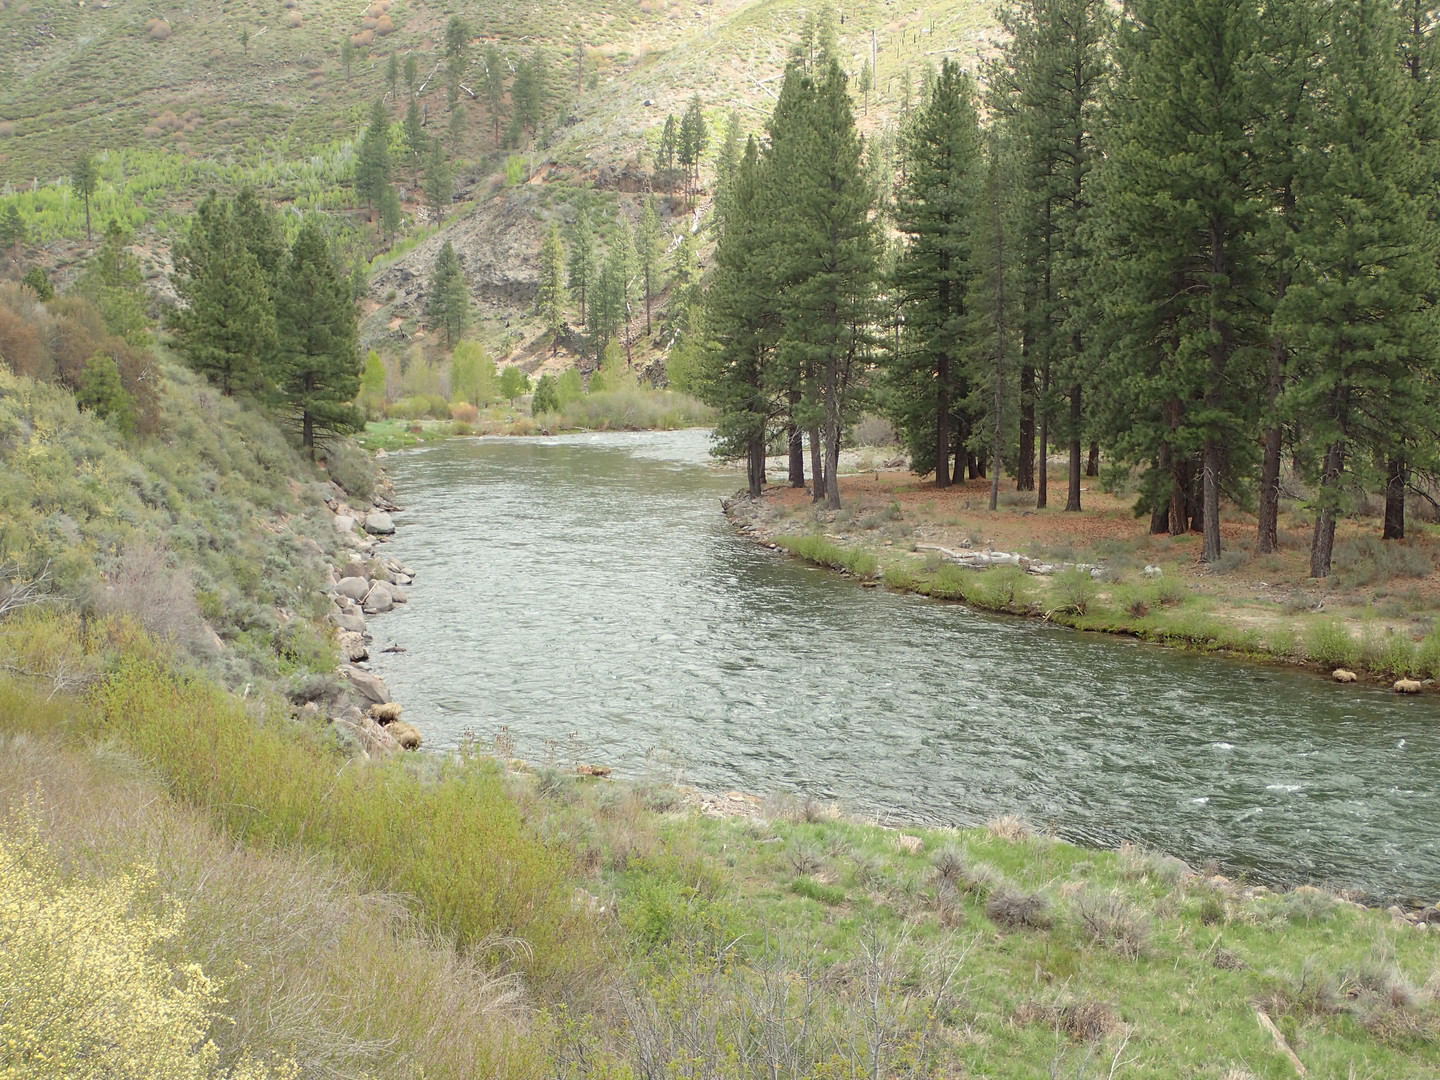 Fly Fising on The Middle Truckee